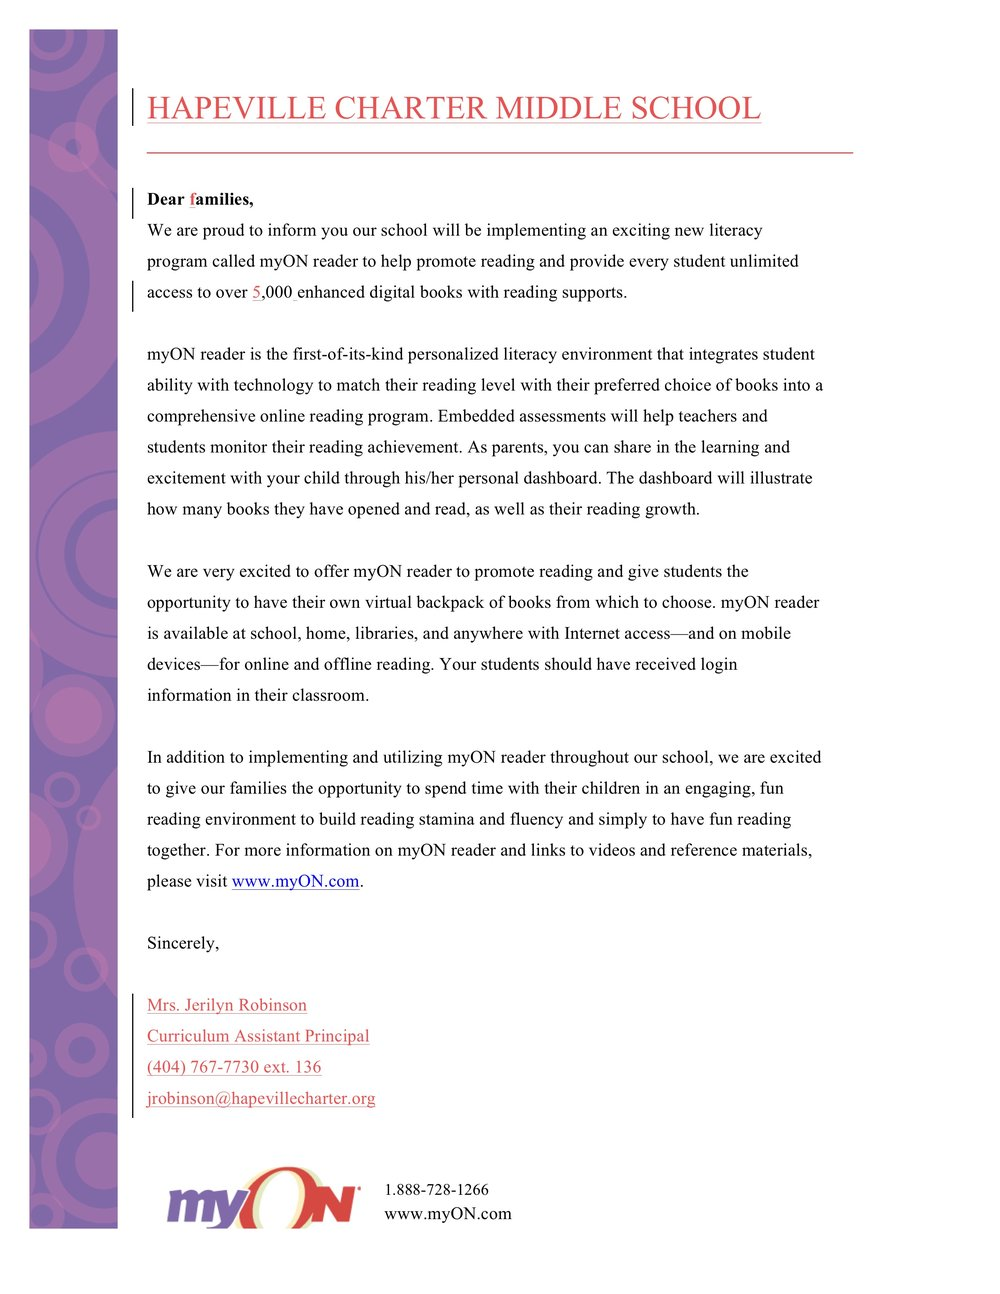 Newsletter Image6th Grade Newsletter 9-12 6.jpeg